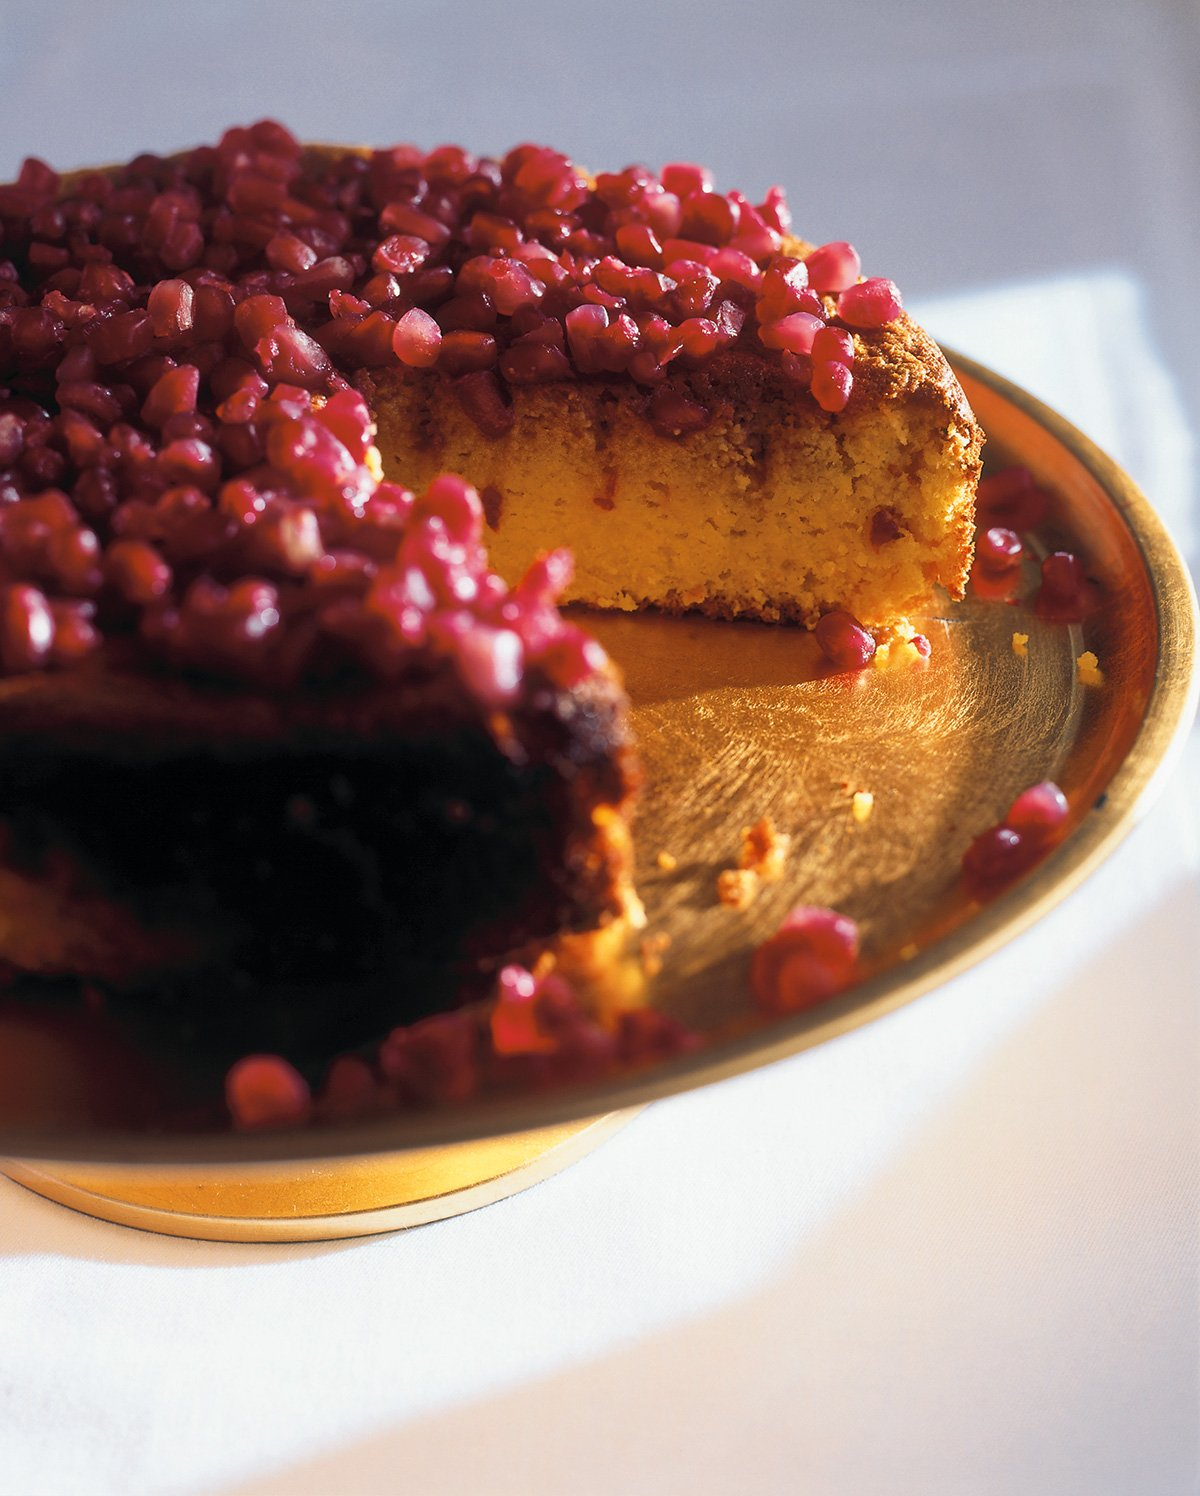 Pomegranate Jewel Cake